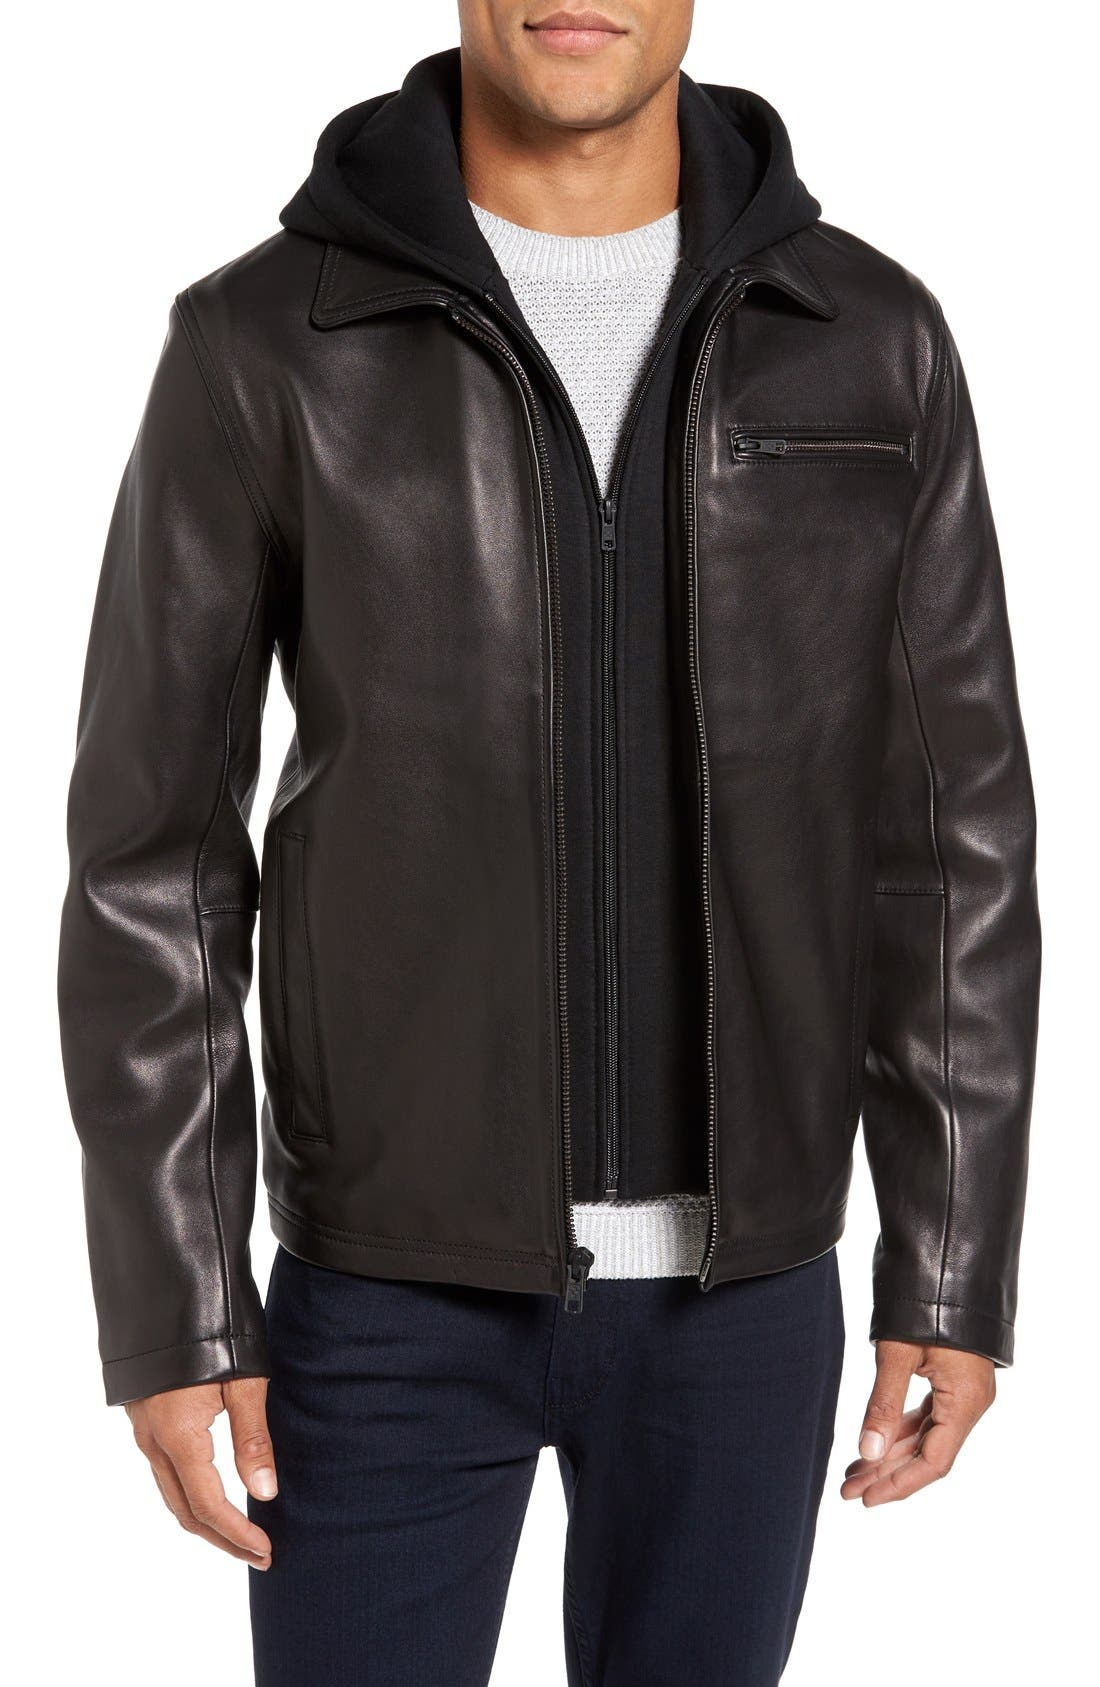 Leather Jacket with Removable Hooded Bib,                             Main thumbnail 1, color,                             Black